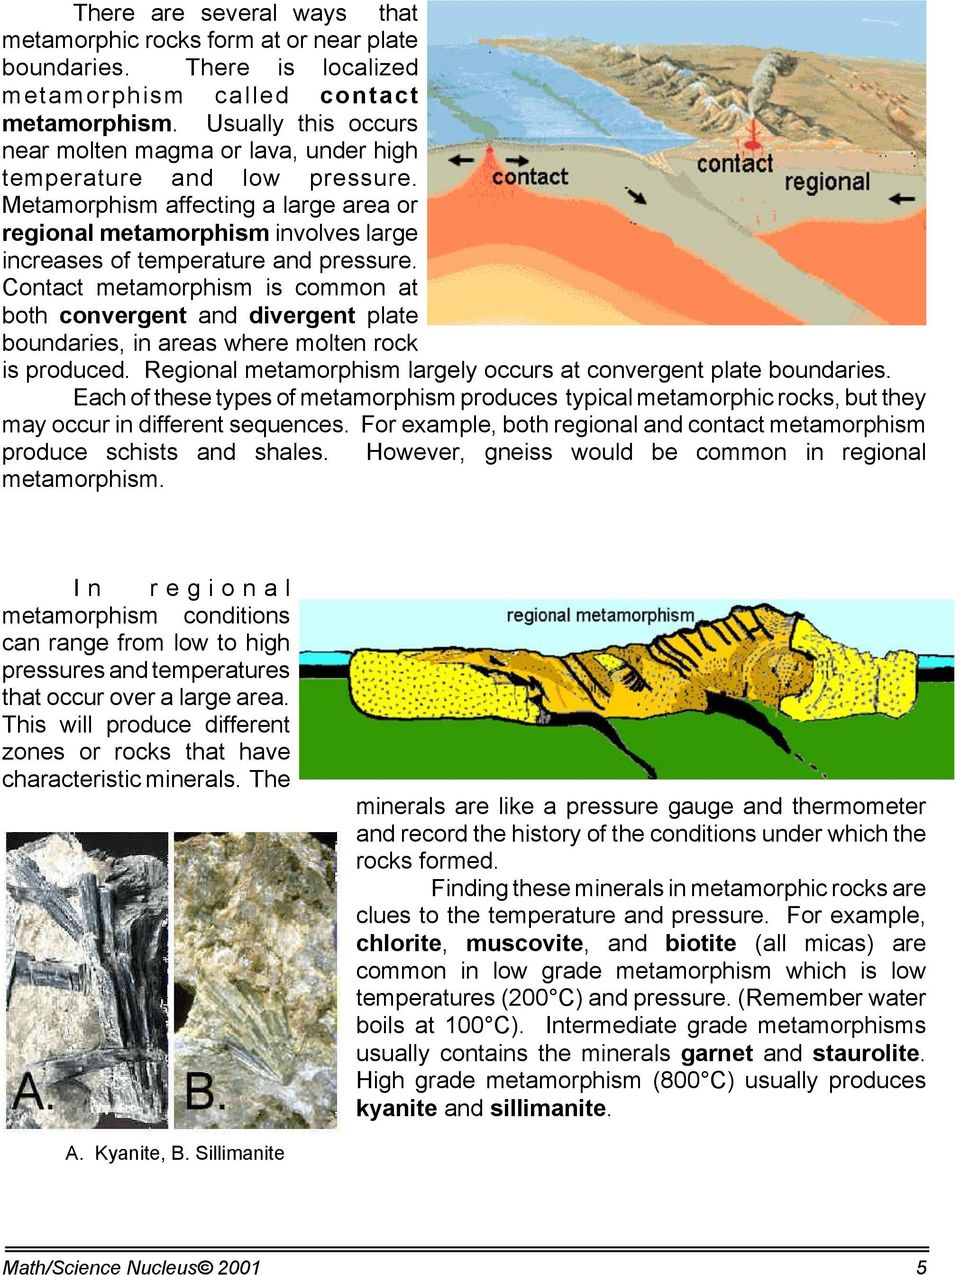 Metamorphism affecting a large area or regional metamorphism involves large increases of temperature and pressure.